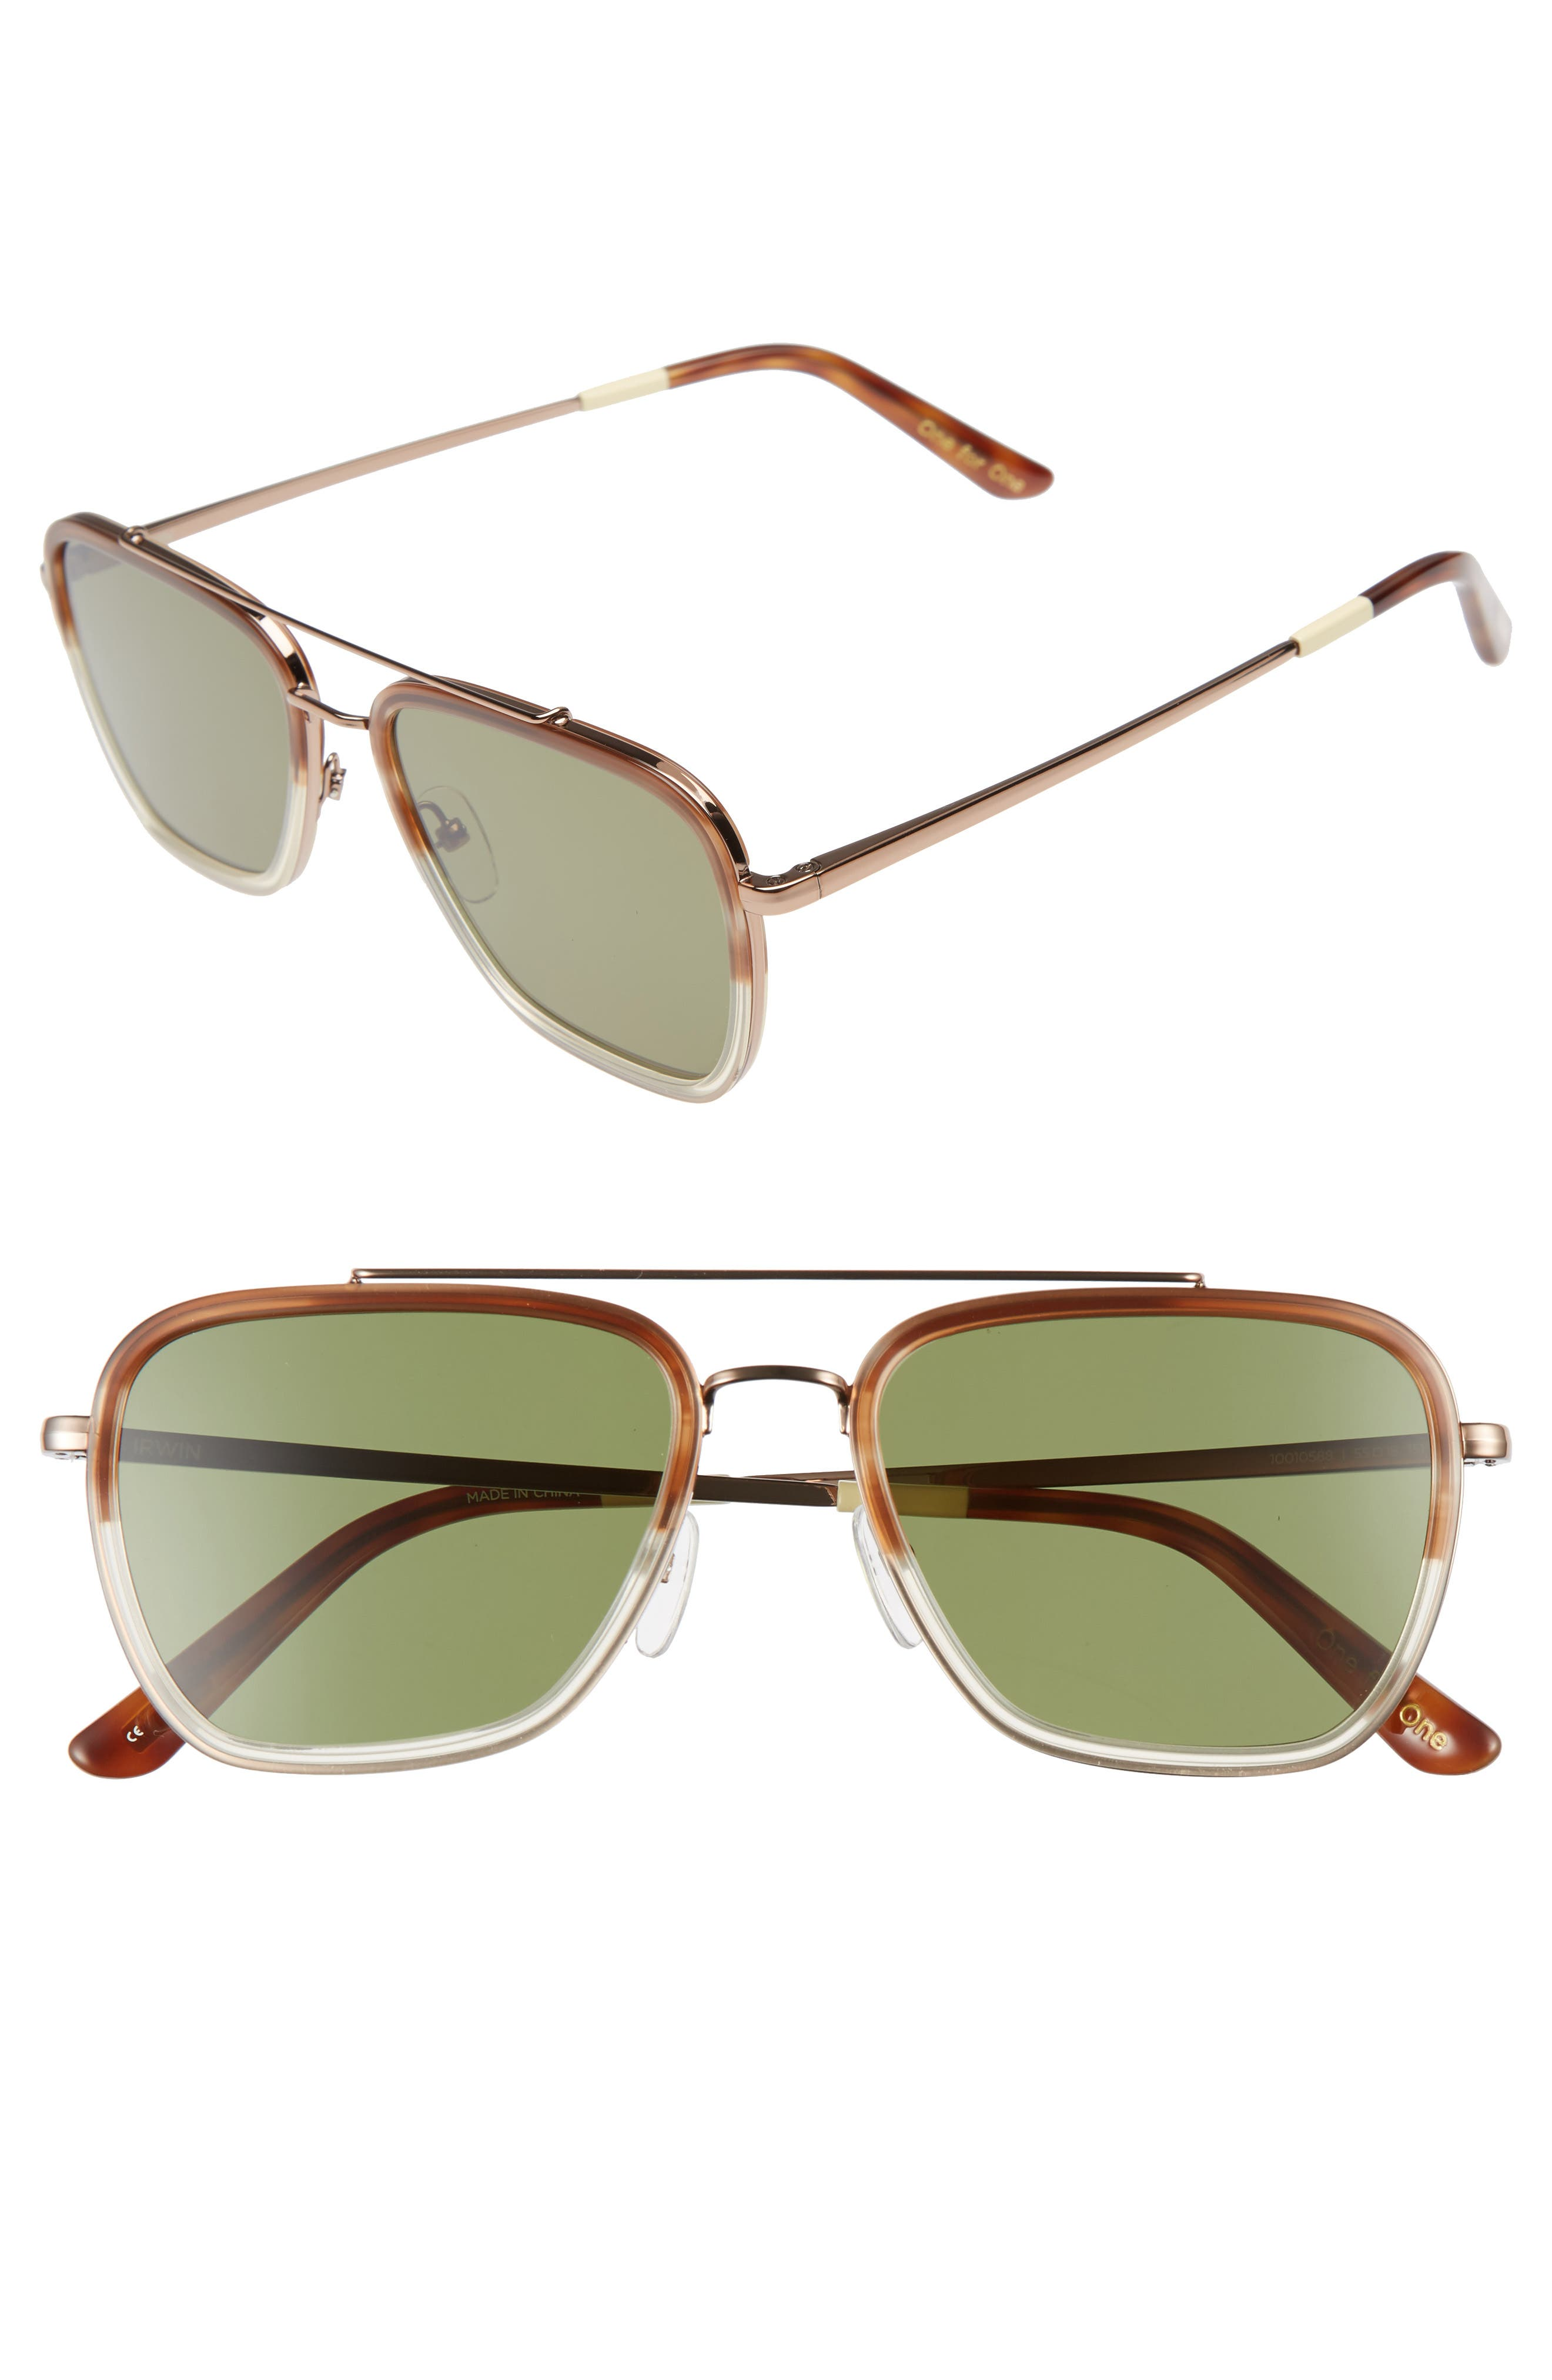 TOMS Irwin 55mm Sunglasses